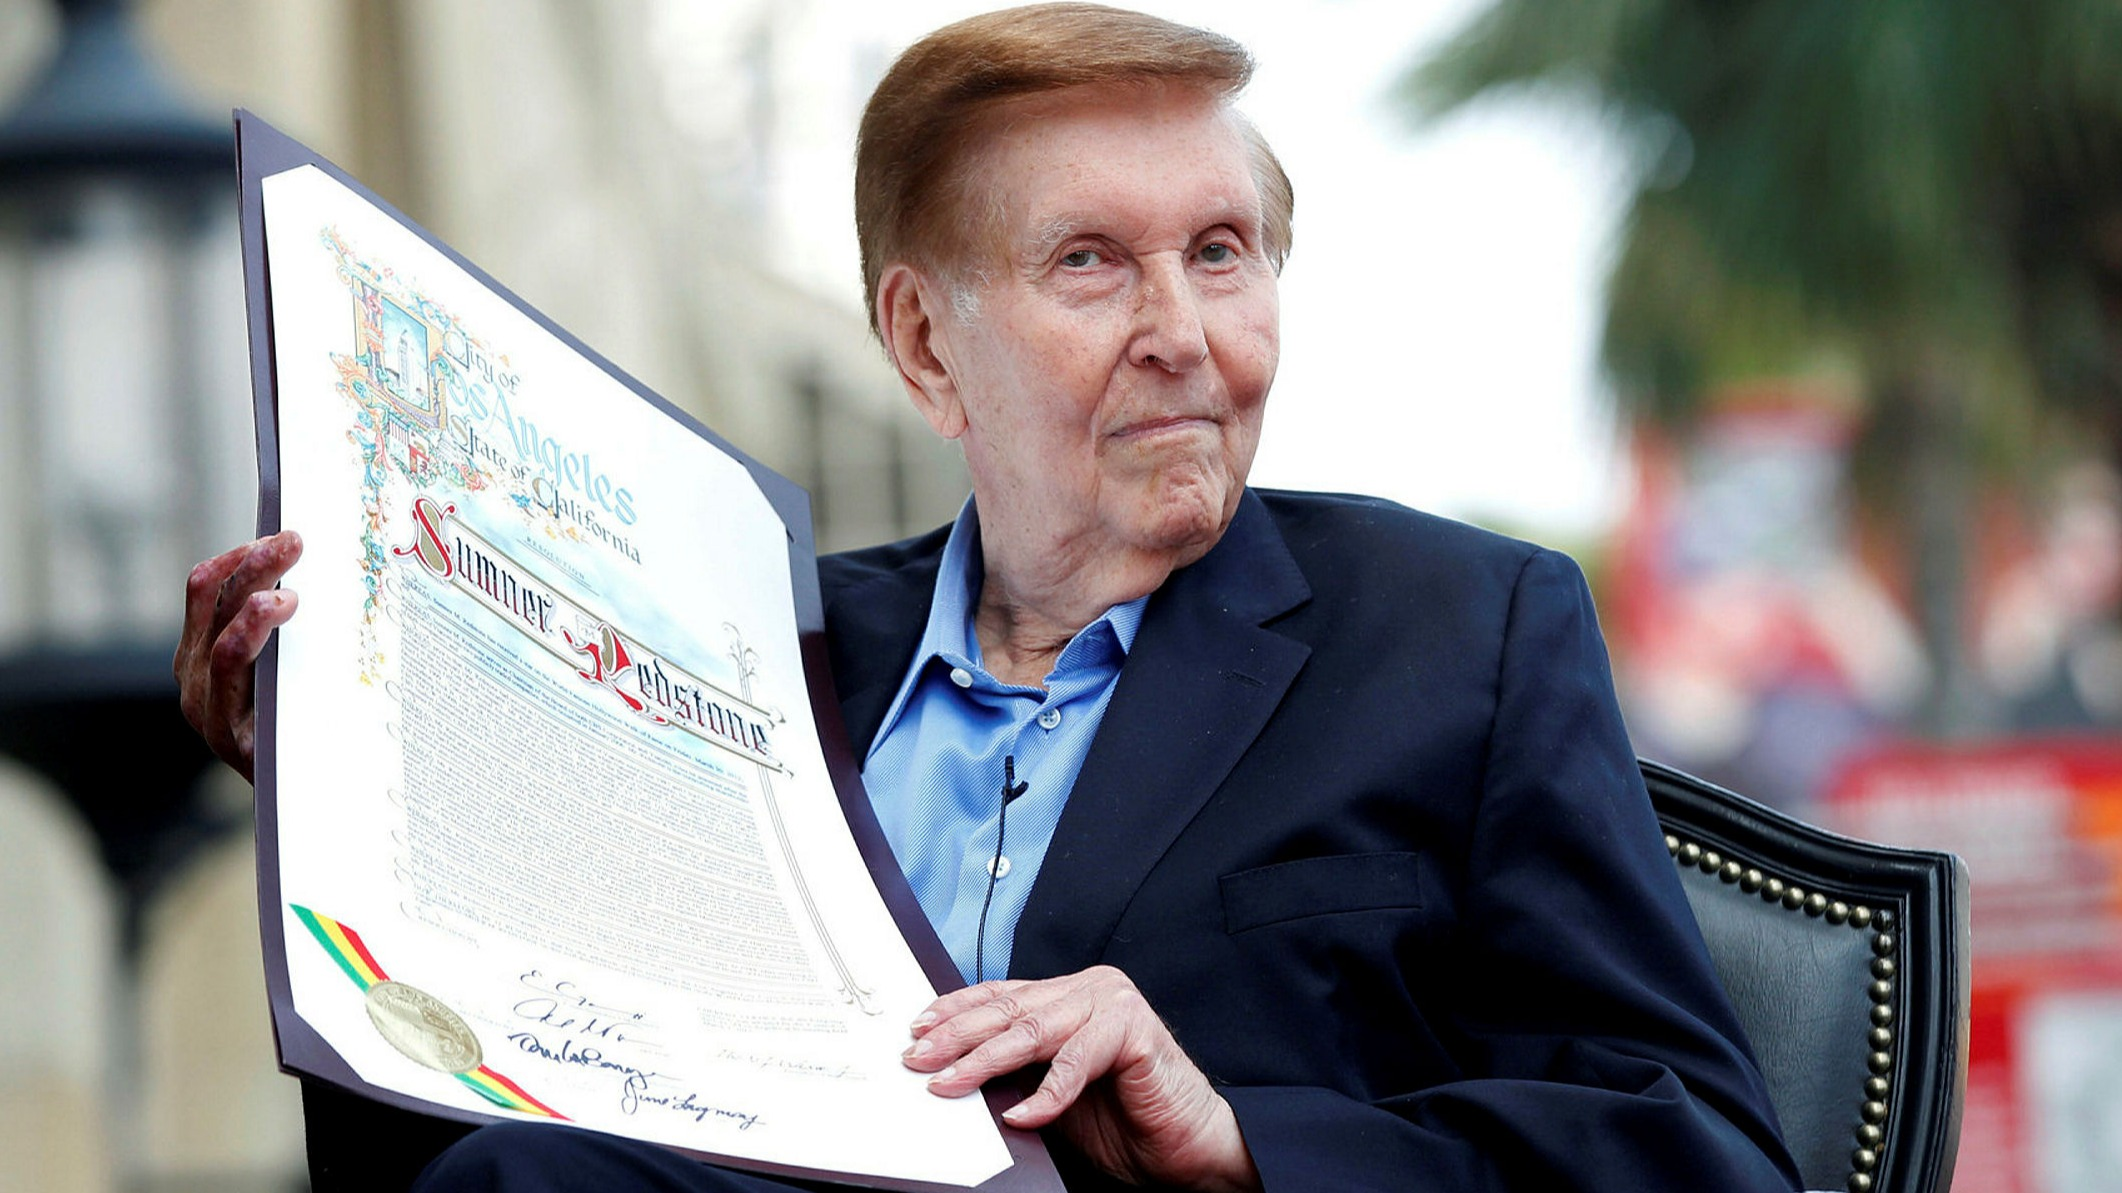 Viacom and CBS mogul Sumner Redstone dies aged 97 | Financial Times